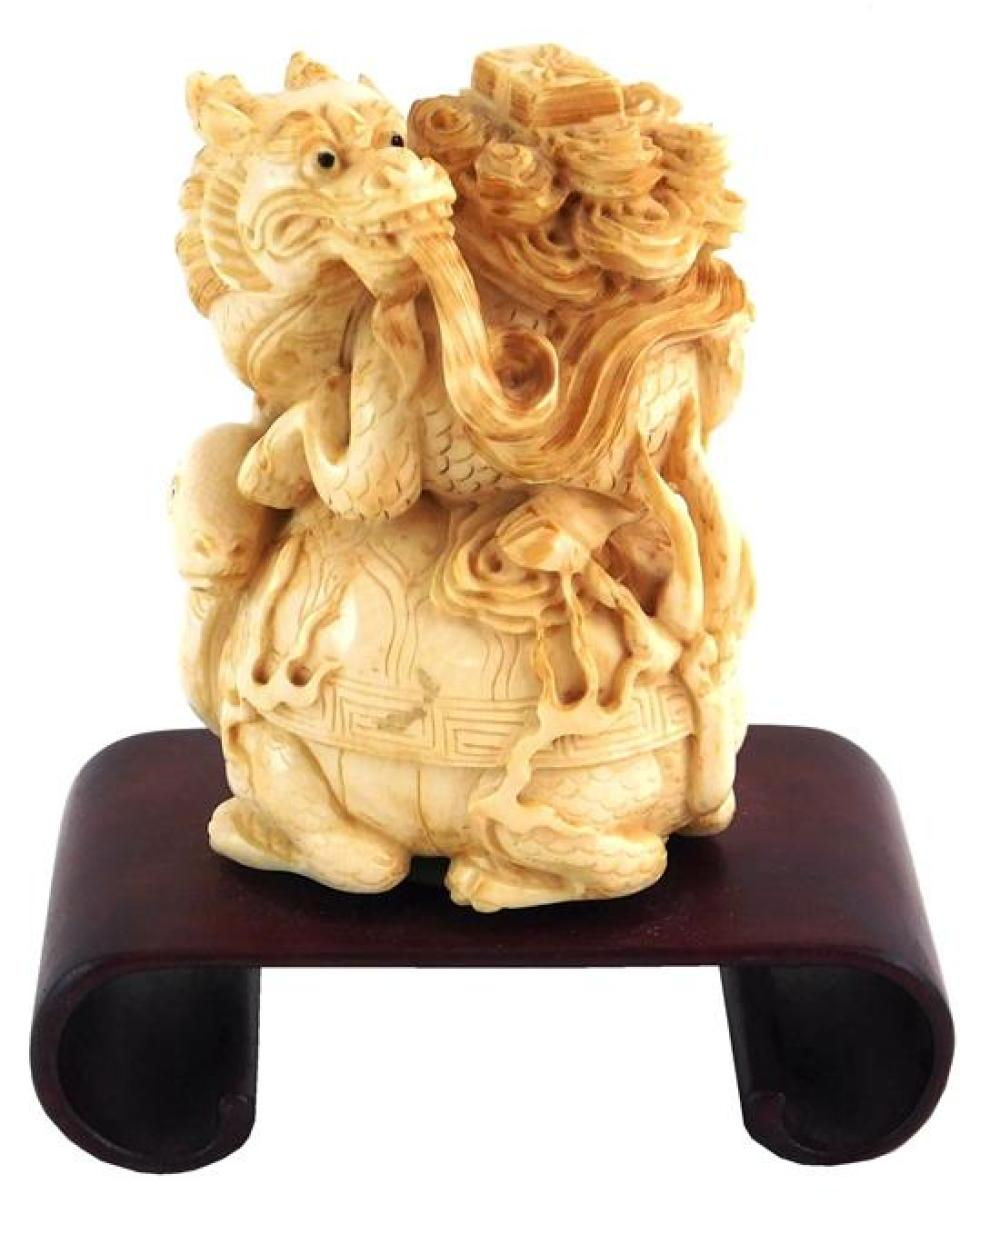 ASIAN: Ivory sculpture of dragon on riding on a tortoise, Chinese, 19th/ mid-20th C., intricately carved and pierced, no visible sig...